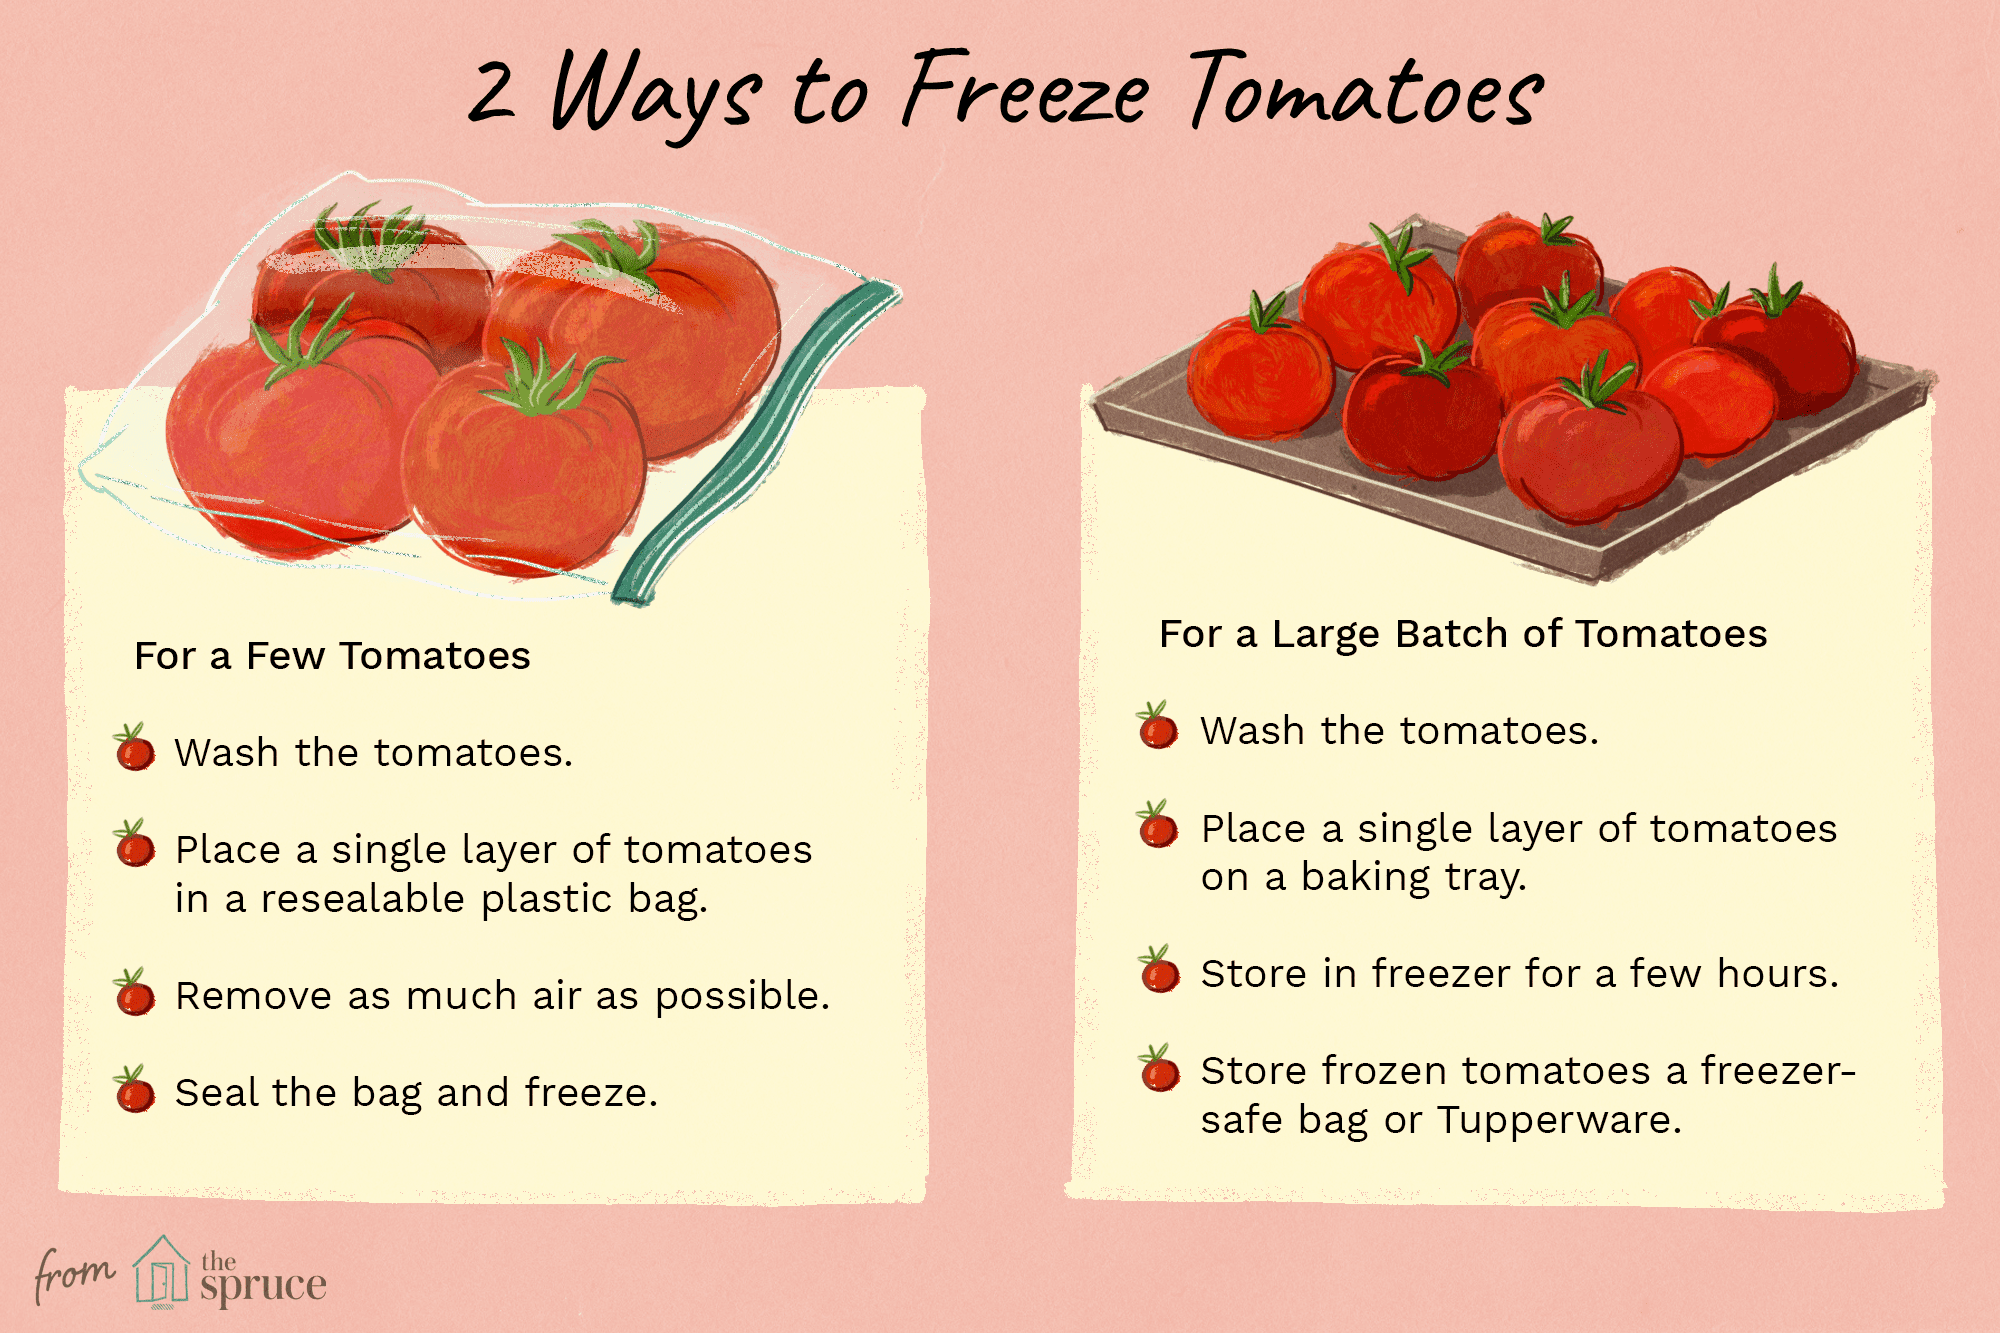 How to Freeze Just a Few Tomatoes